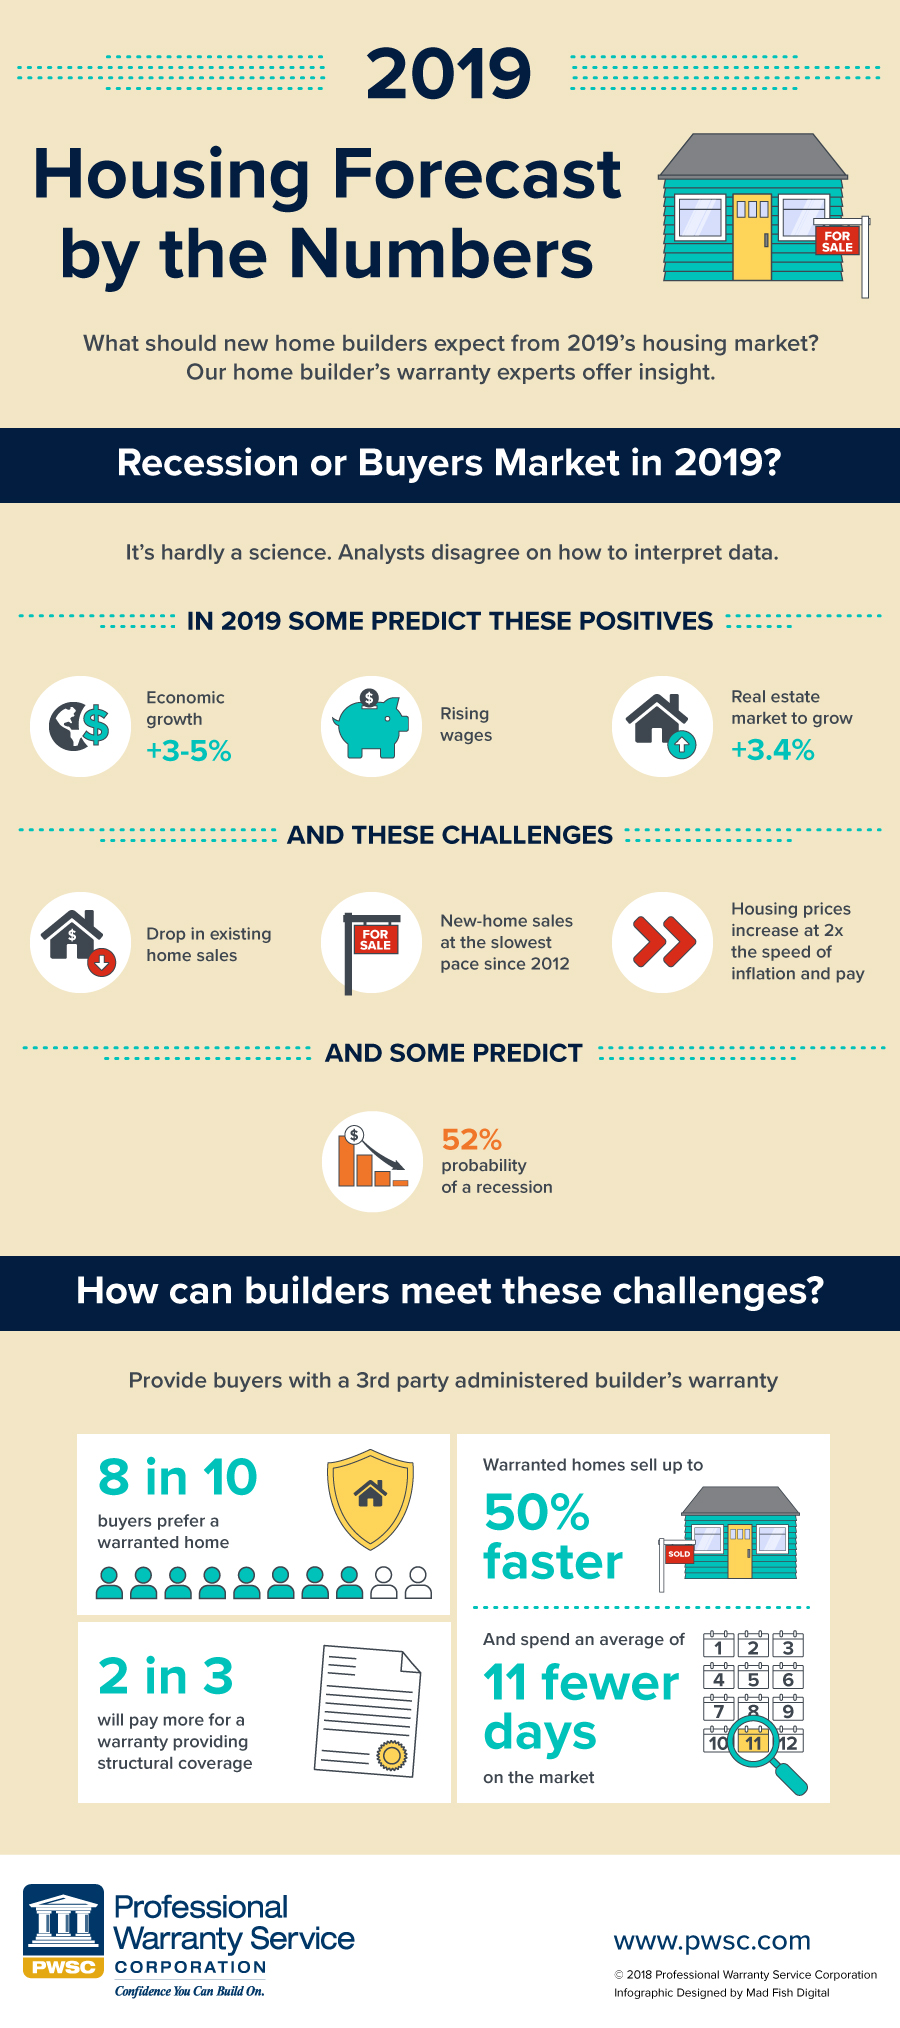 PWSC-2019-Housing-Forecast-by-the-Numbers